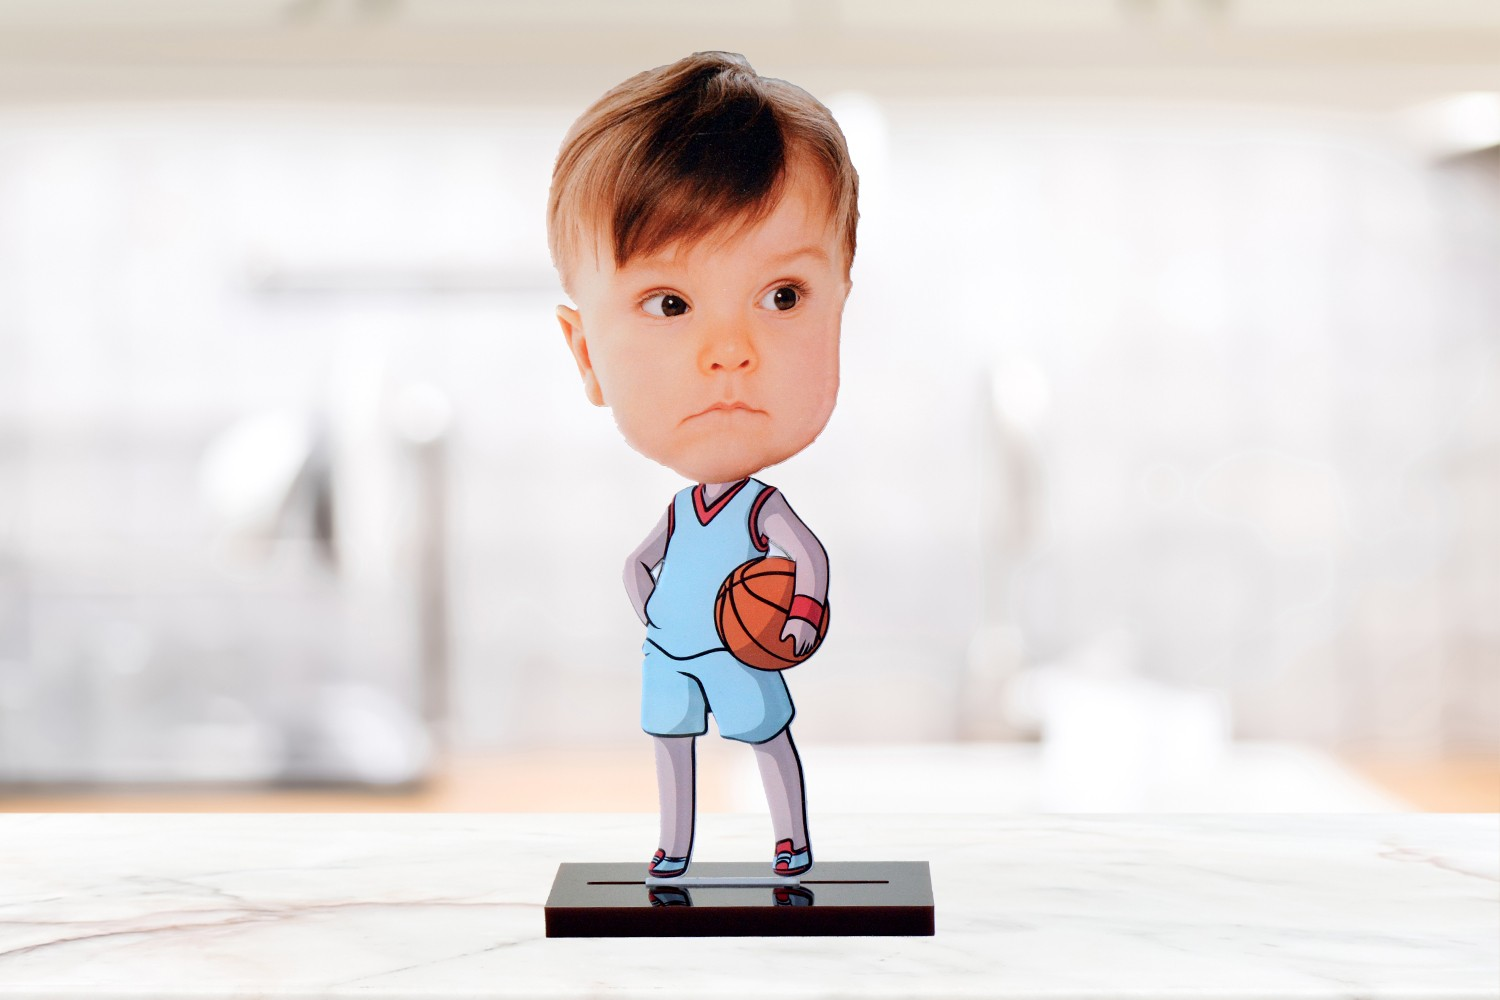 Basketball player caricature